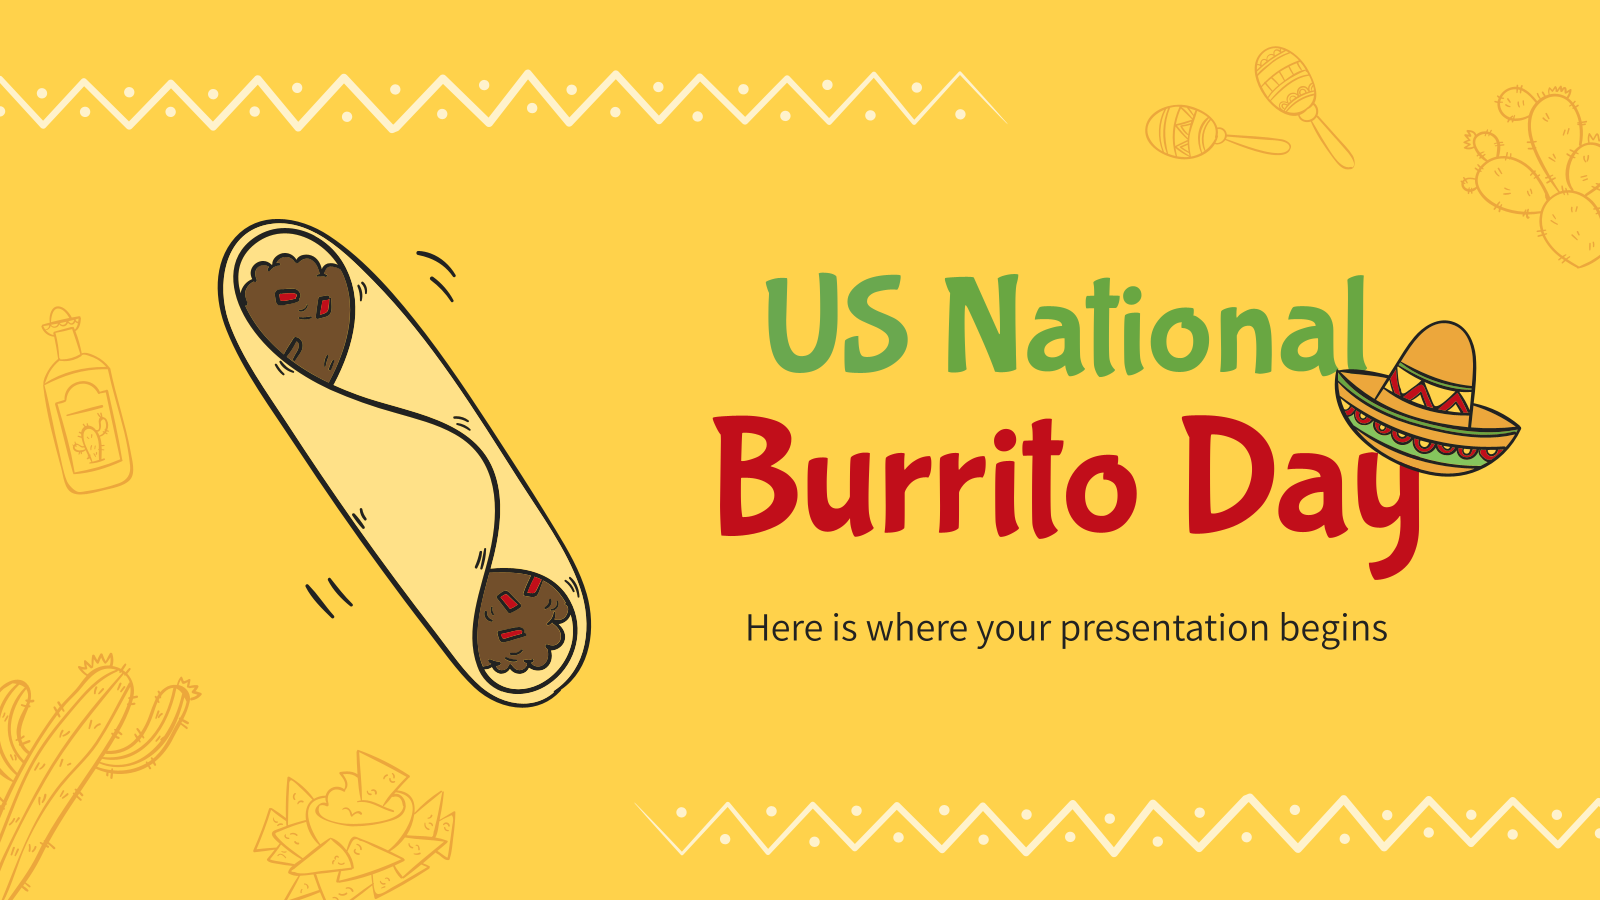 US National Burrito Day presentation template